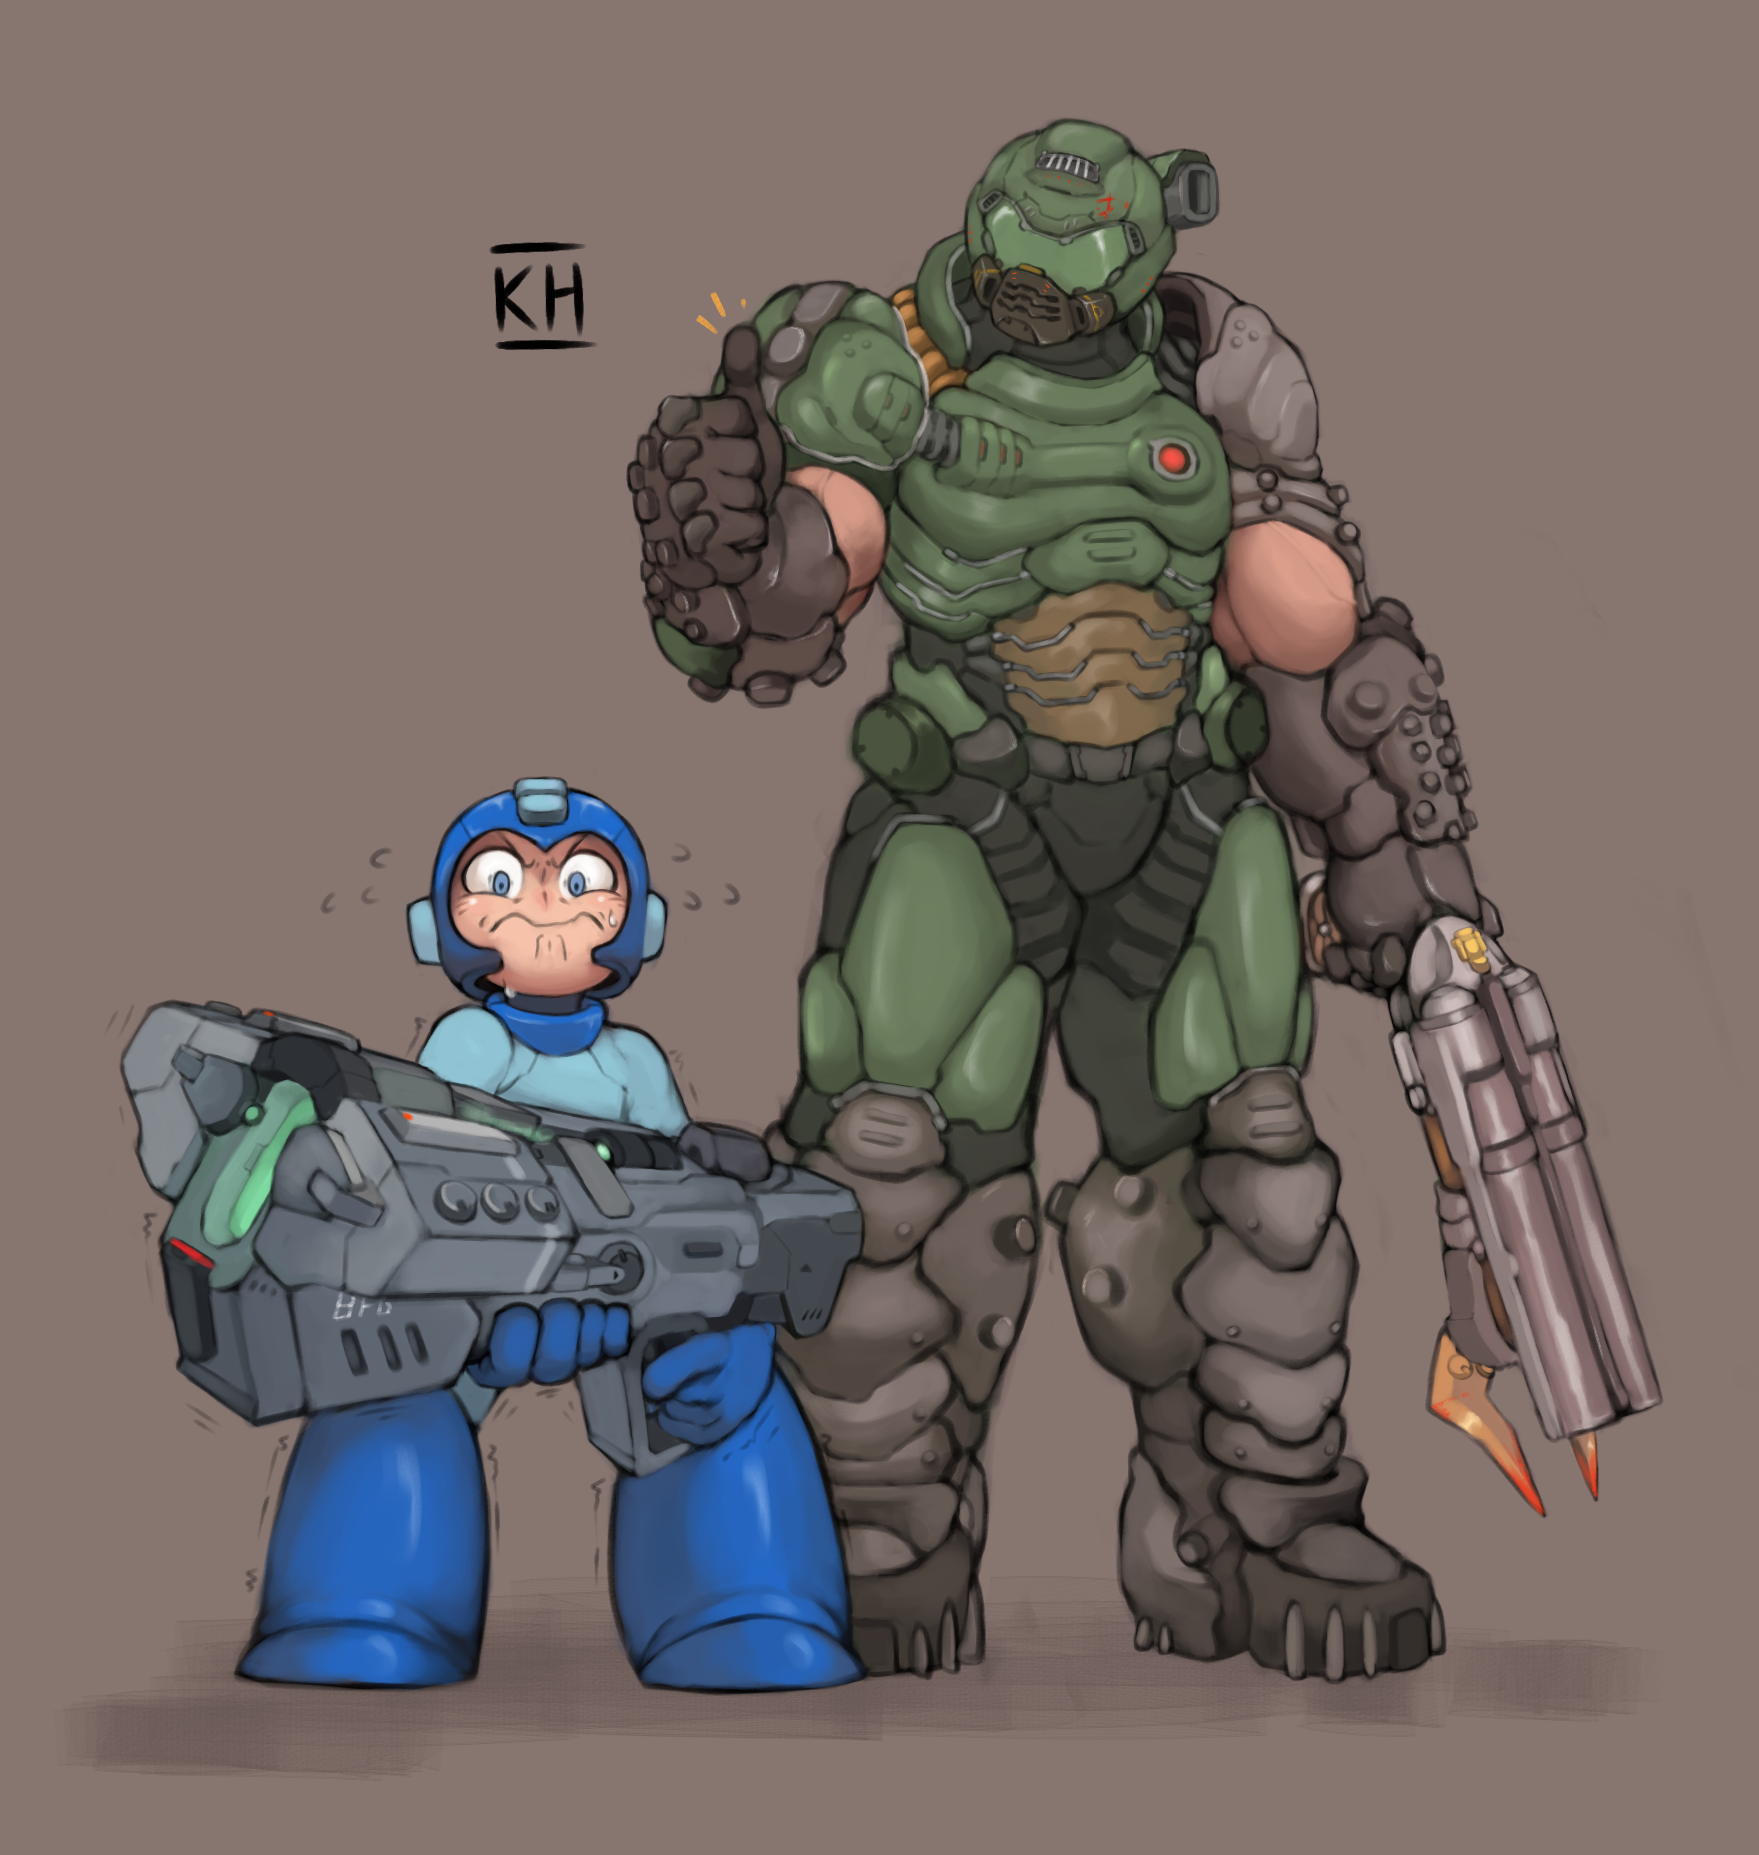 Rockman And Doomguy Rockman And 4 More Drawn By Kelvin Hiu